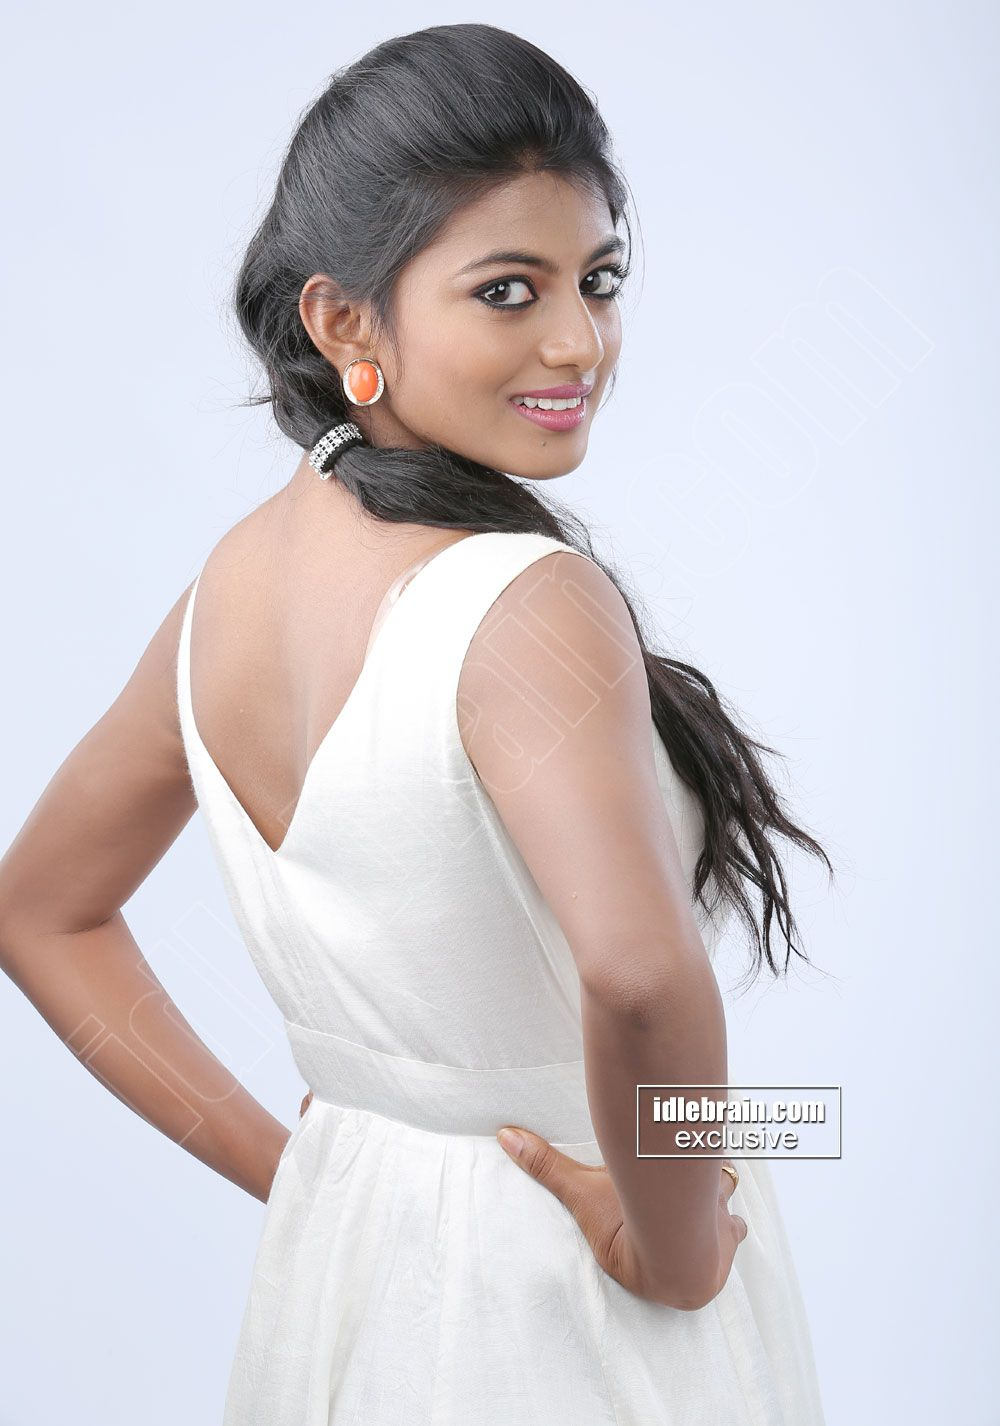 rakshita photo gallery - telugu cinema actress | indian girls